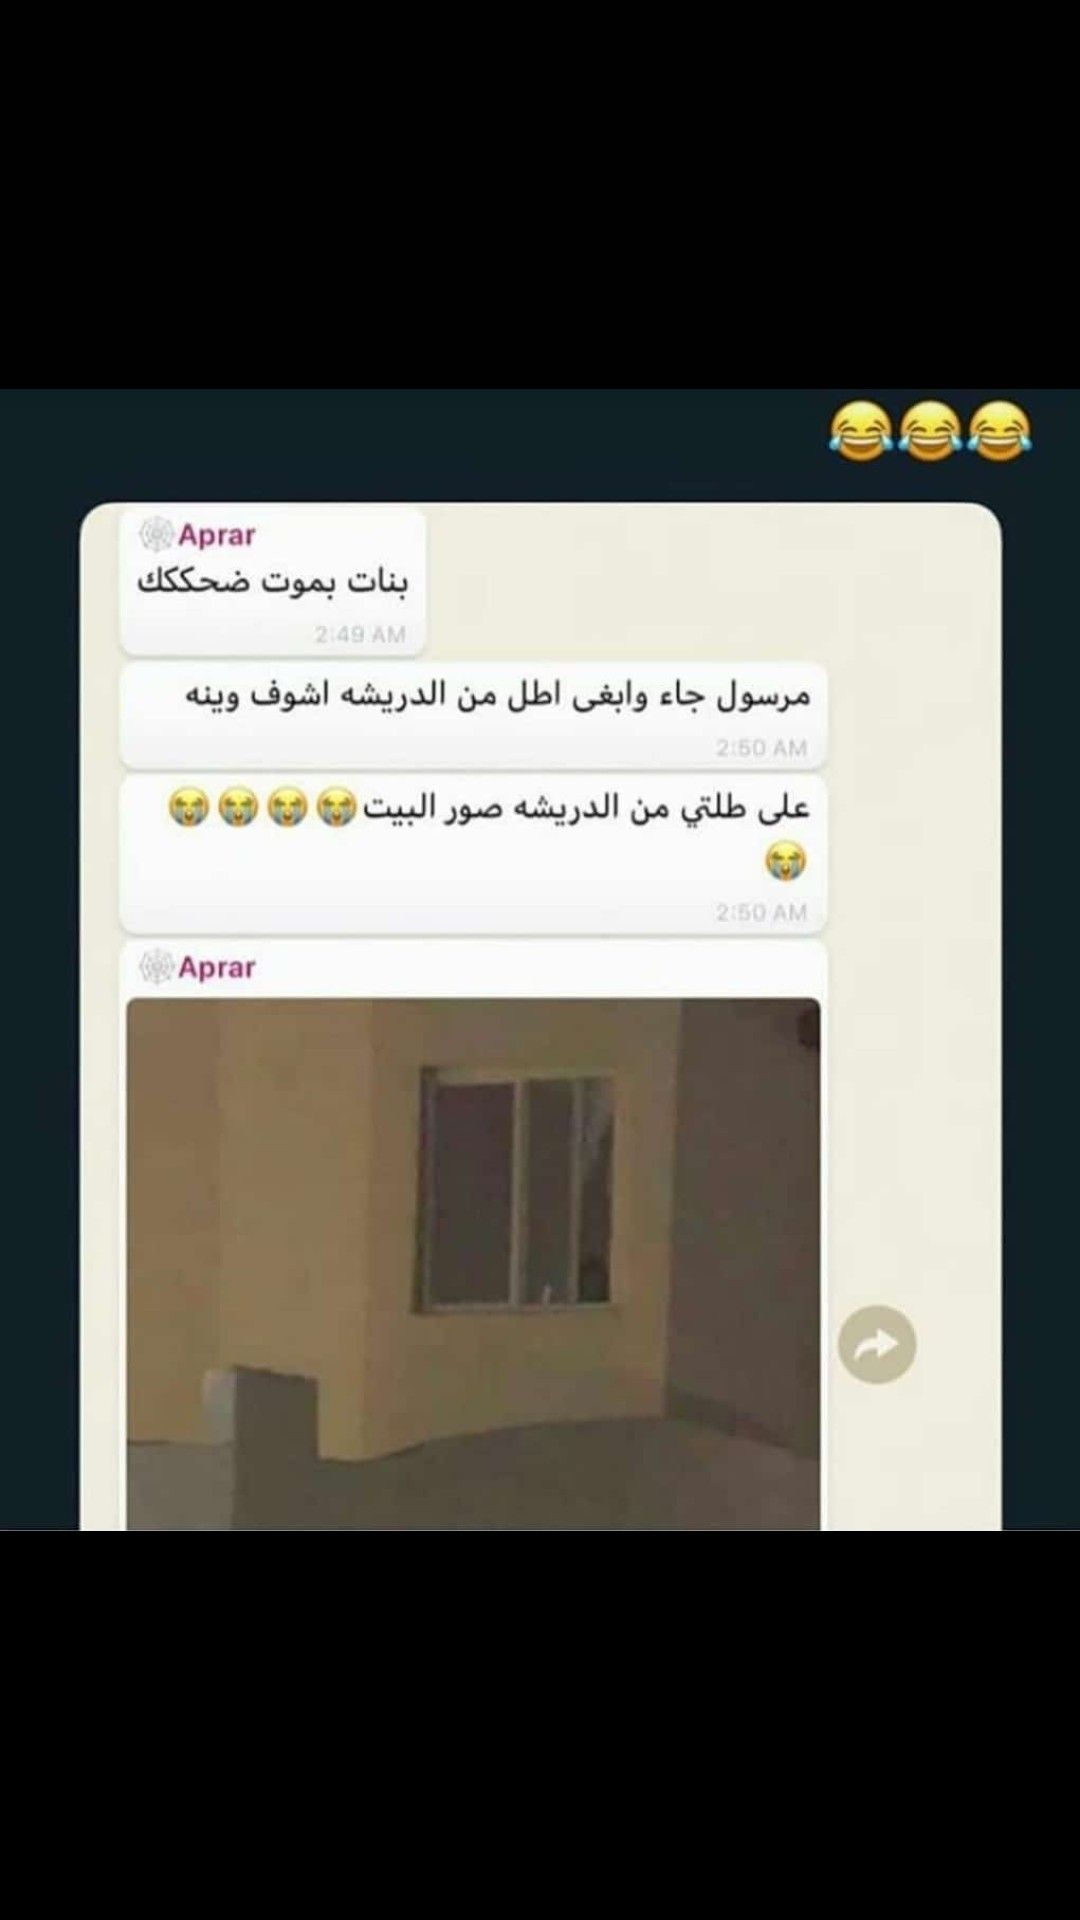 Pin By Jojo On استهبال Funny Quotes Arabic Funny Funny Arabic Quotes